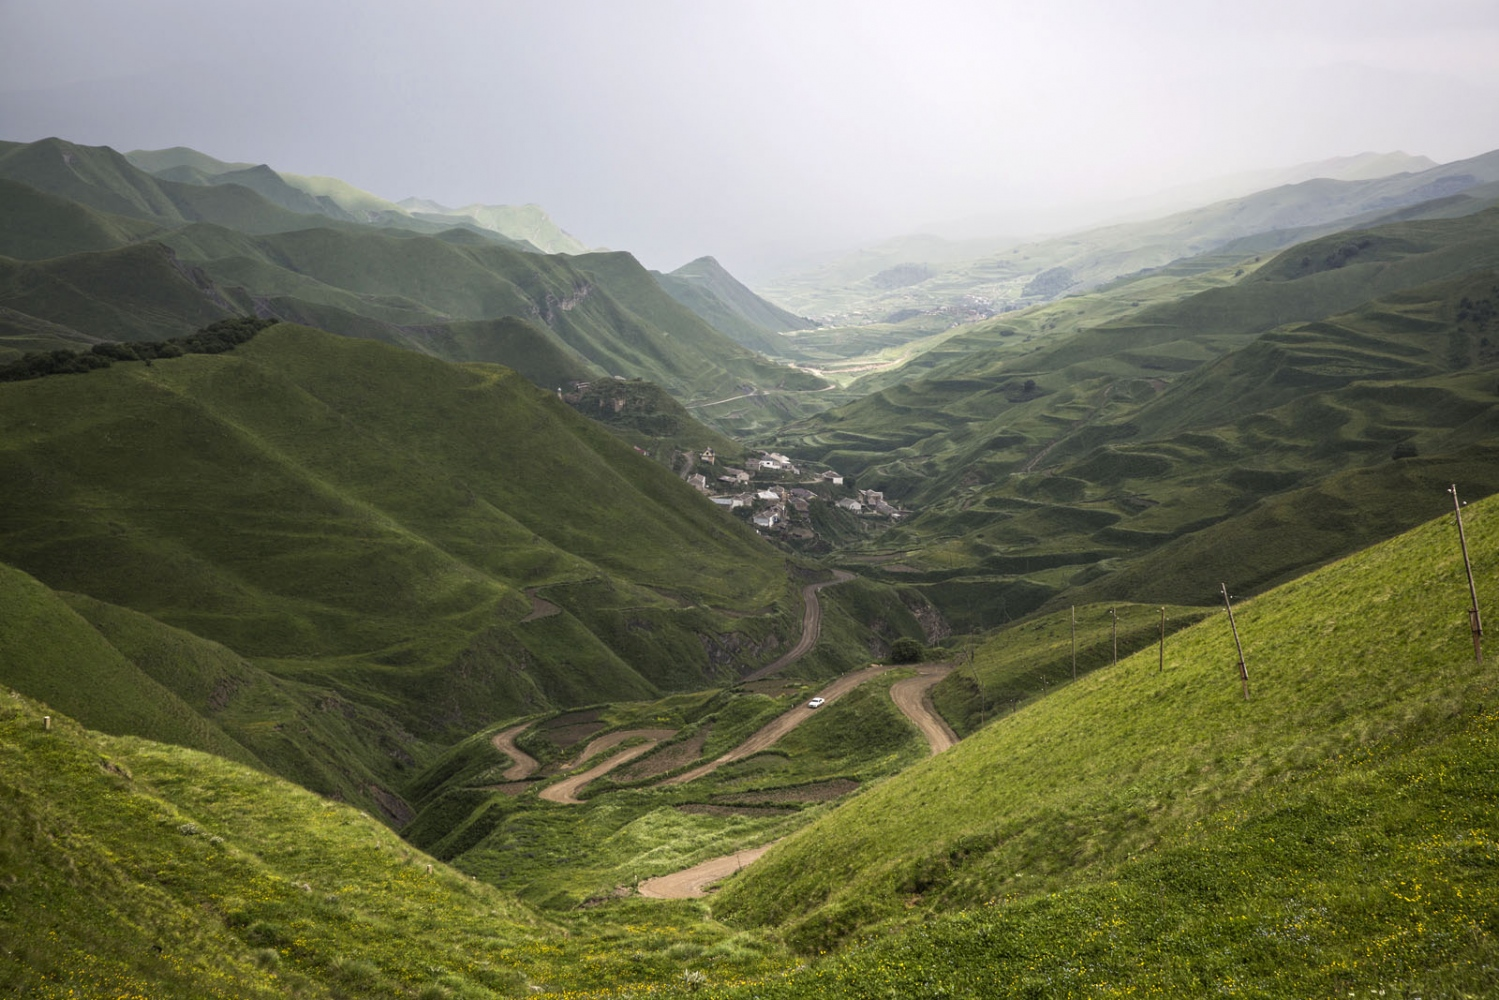 A remote twisty road winds its way through the green hills as rain approaches.